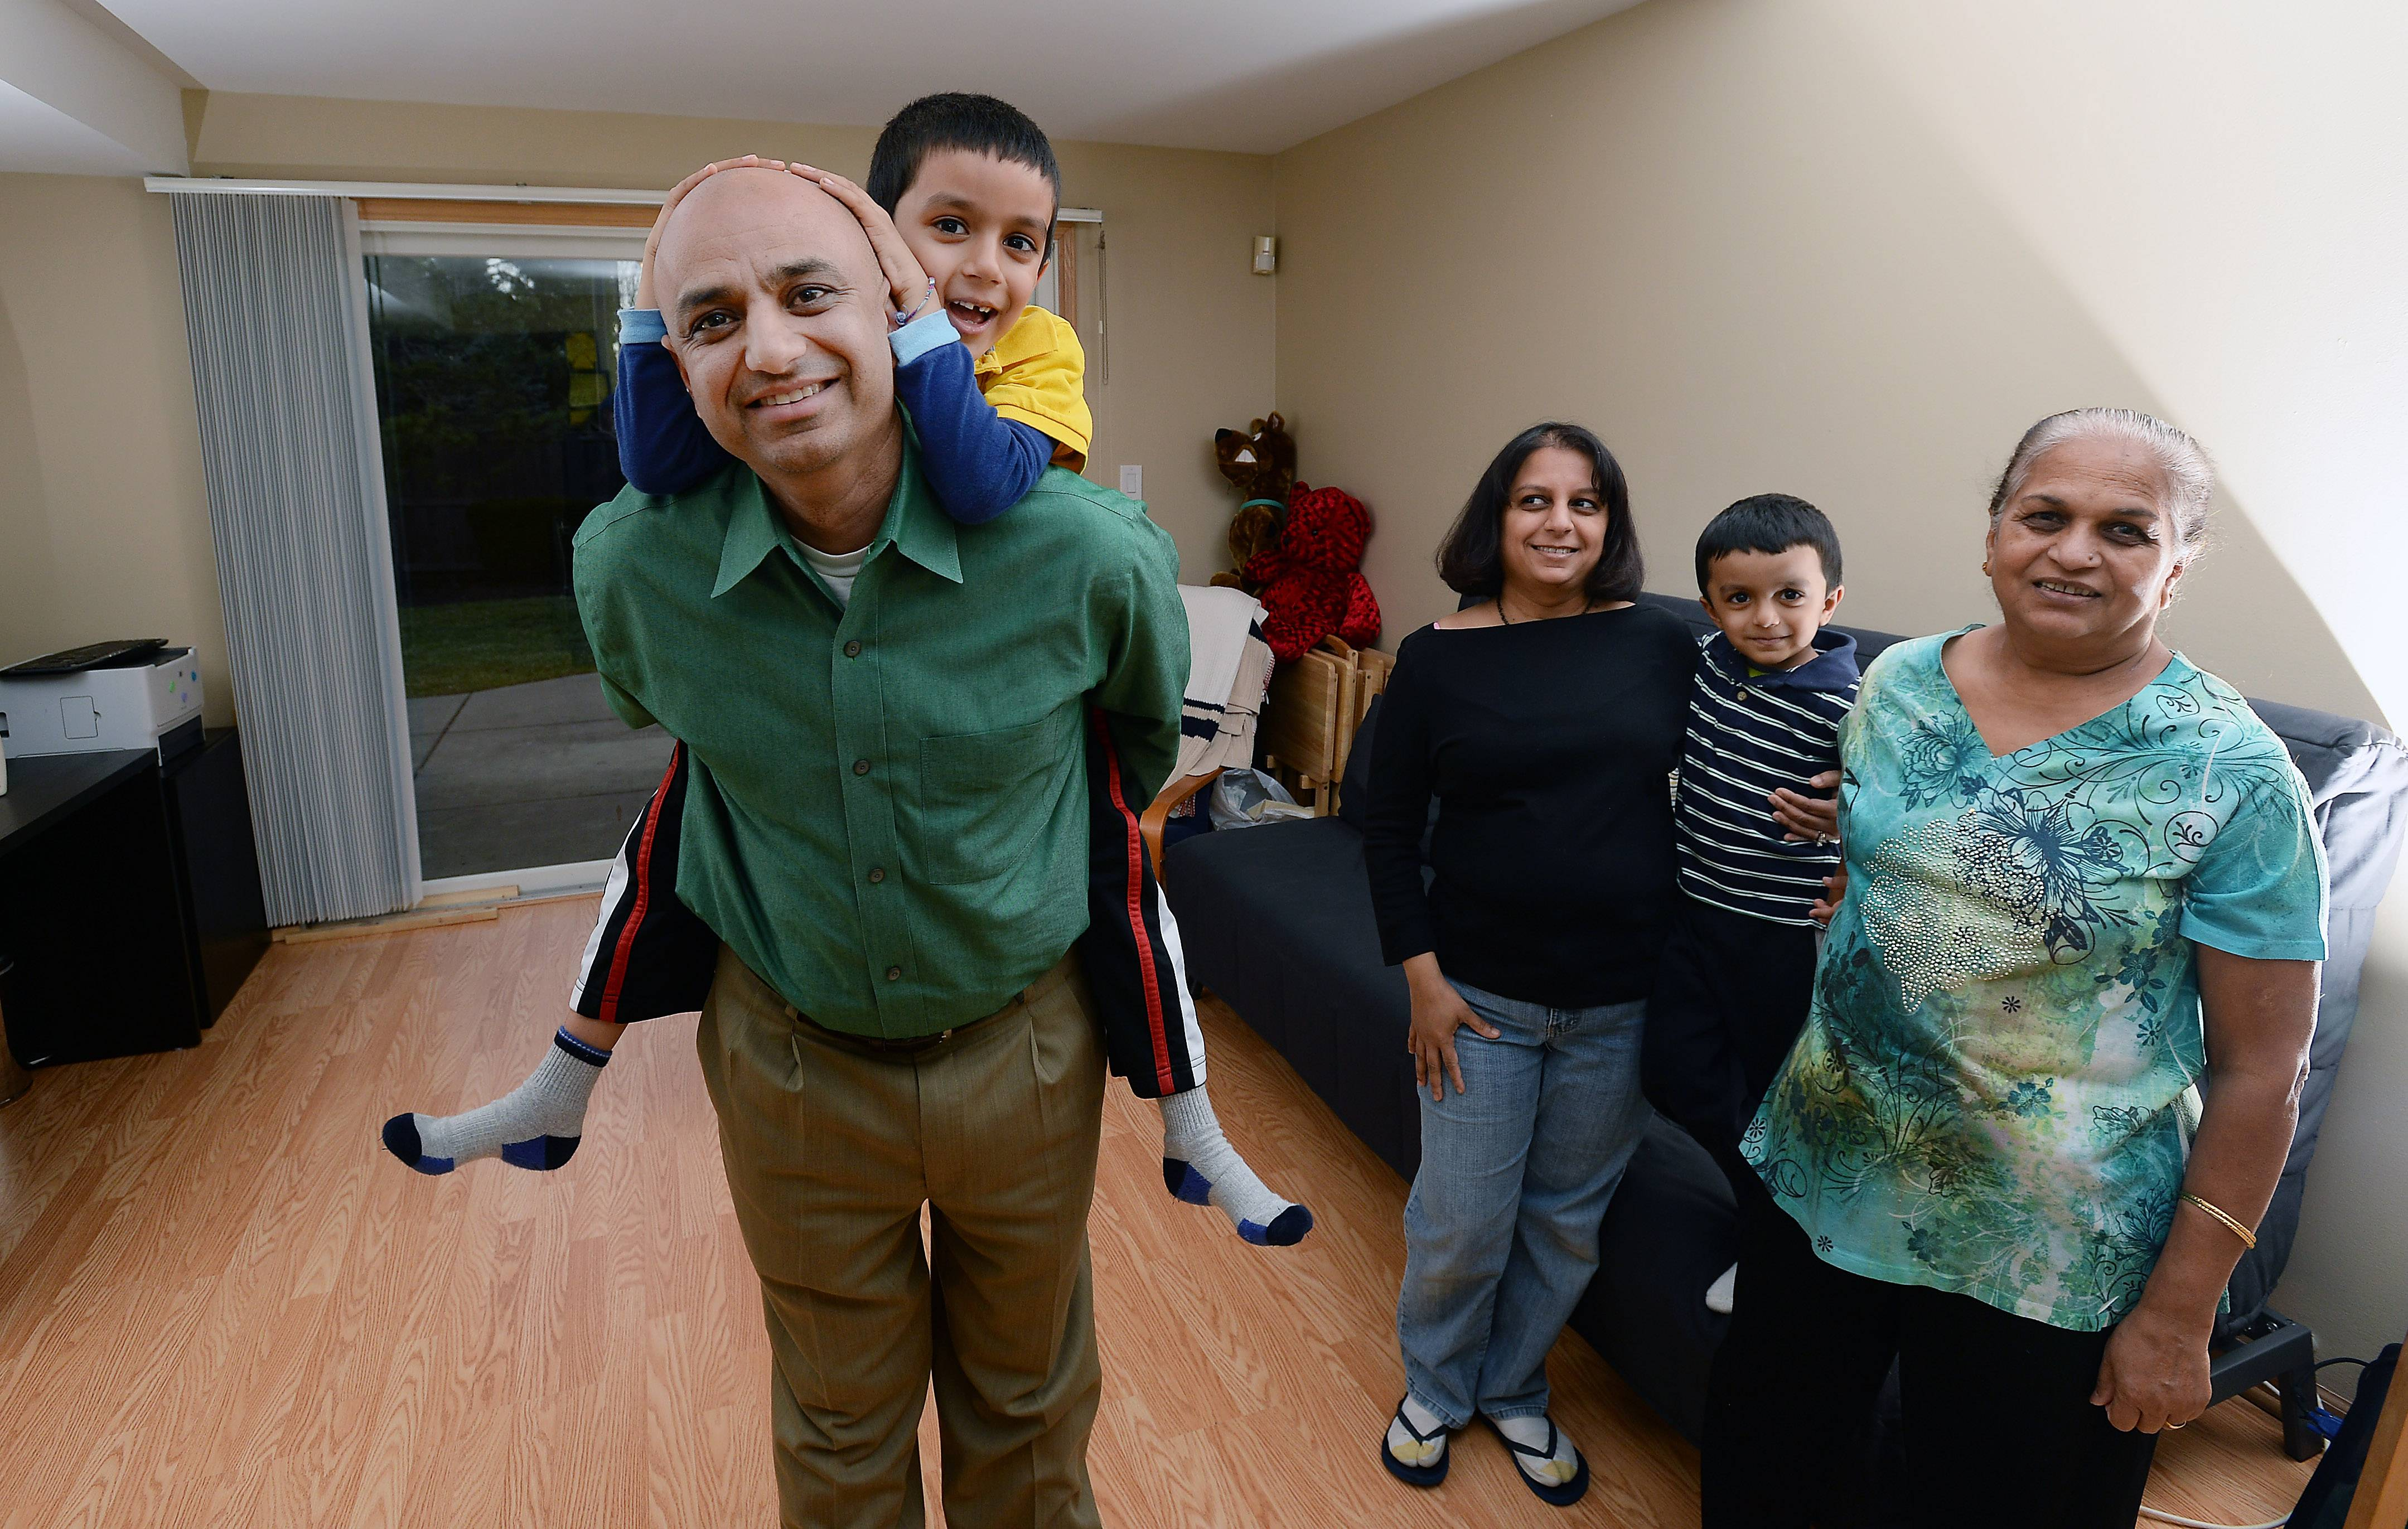 The Bhatt family of Mount Prospect love their new multigenerational home. Jaydip and his wife Devyani, center, live withDevyani's mother, Lili Patel, right, as well as their two kids, Raveen, 6, (on his dad's back) and Jushnn, 4.